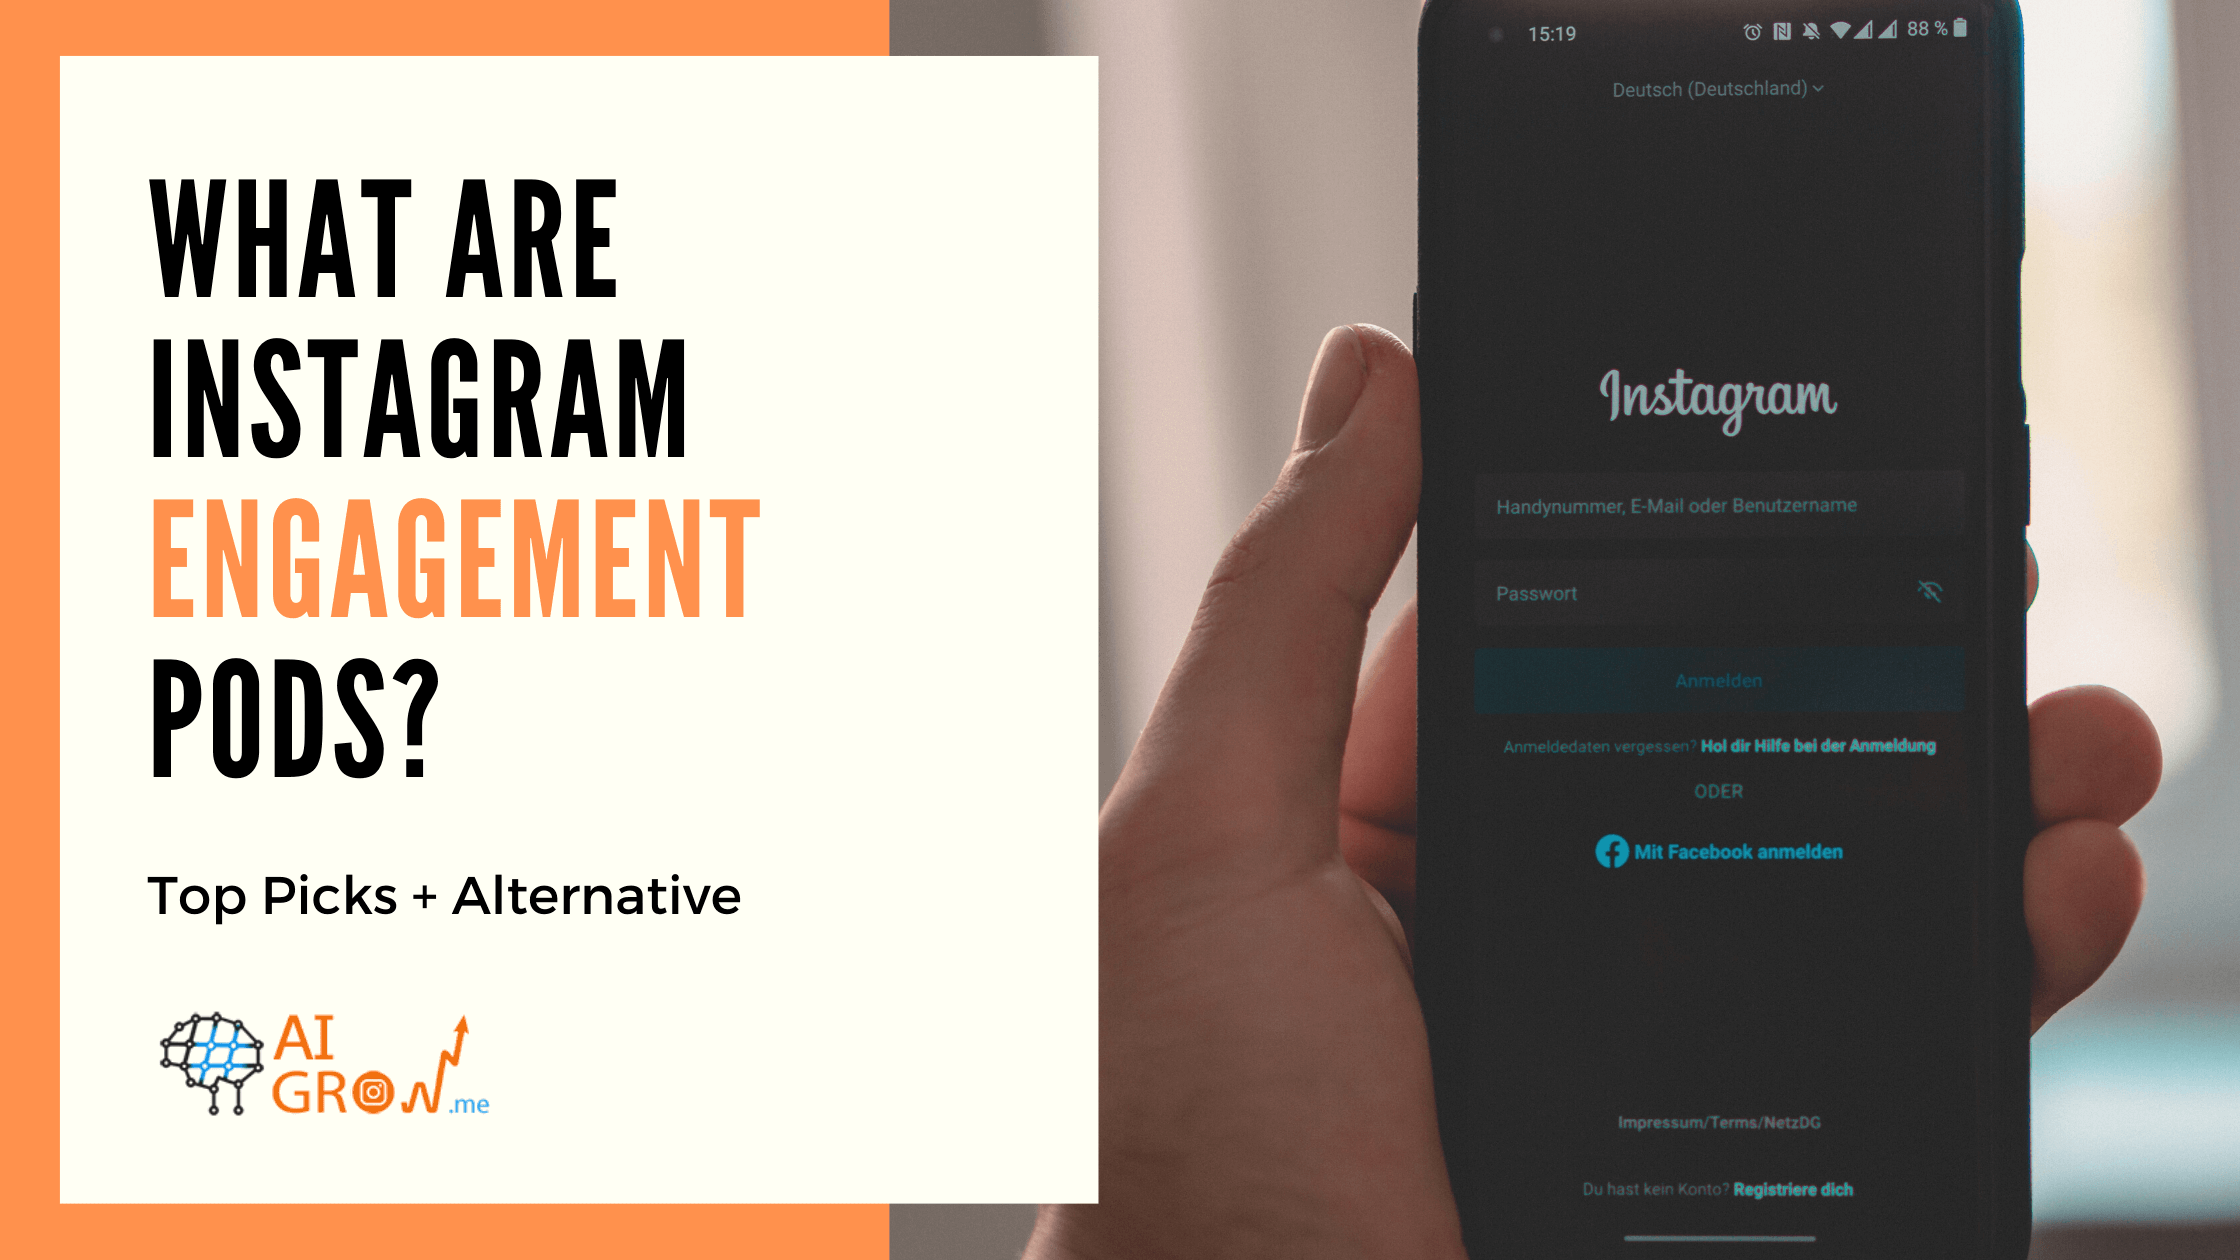 What are Instagram Engagement Pods? Top Picks + Alternative